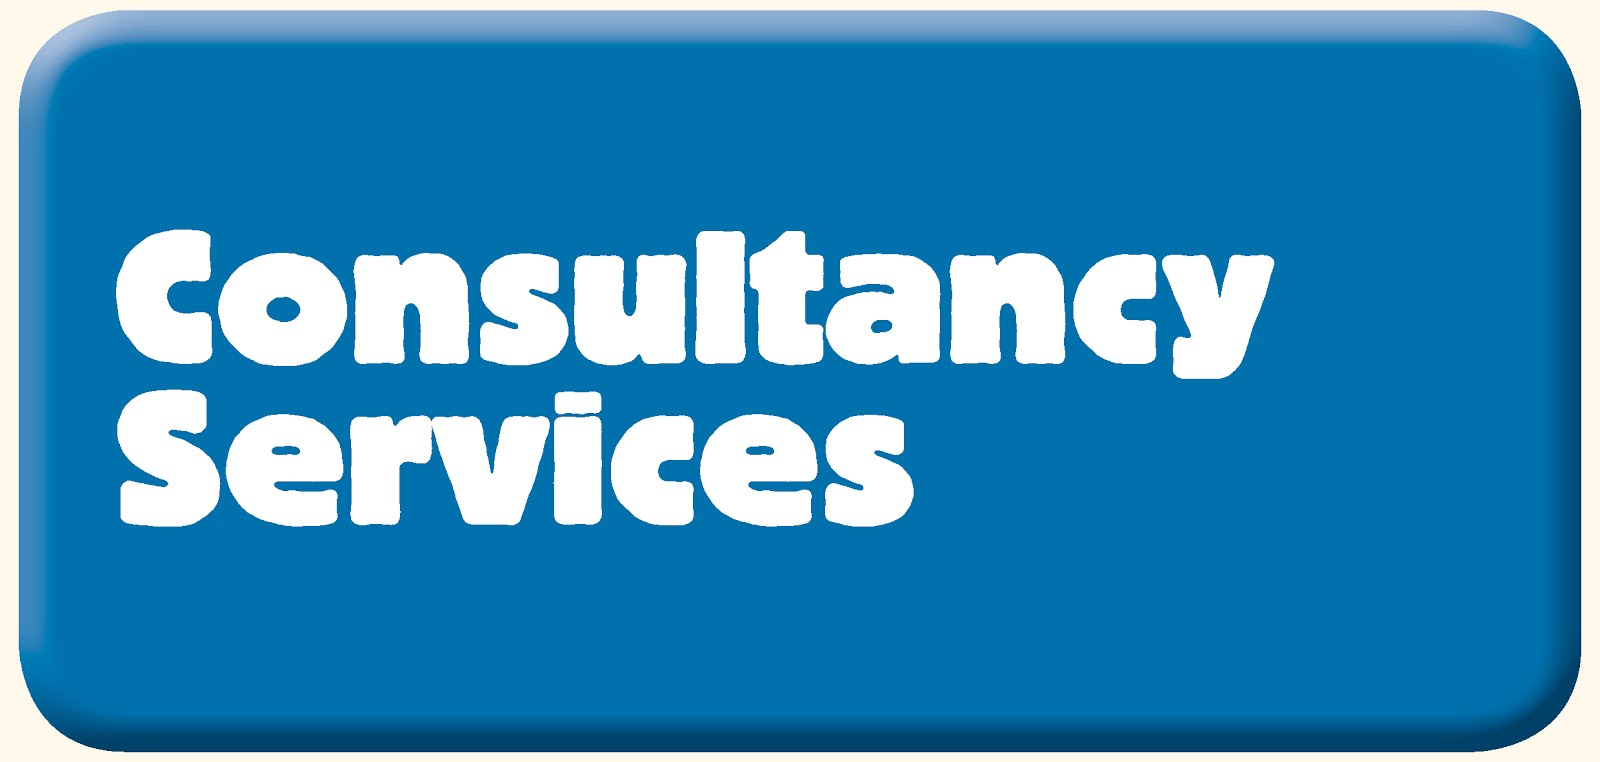 ACKCITY Business & Consultancy Services